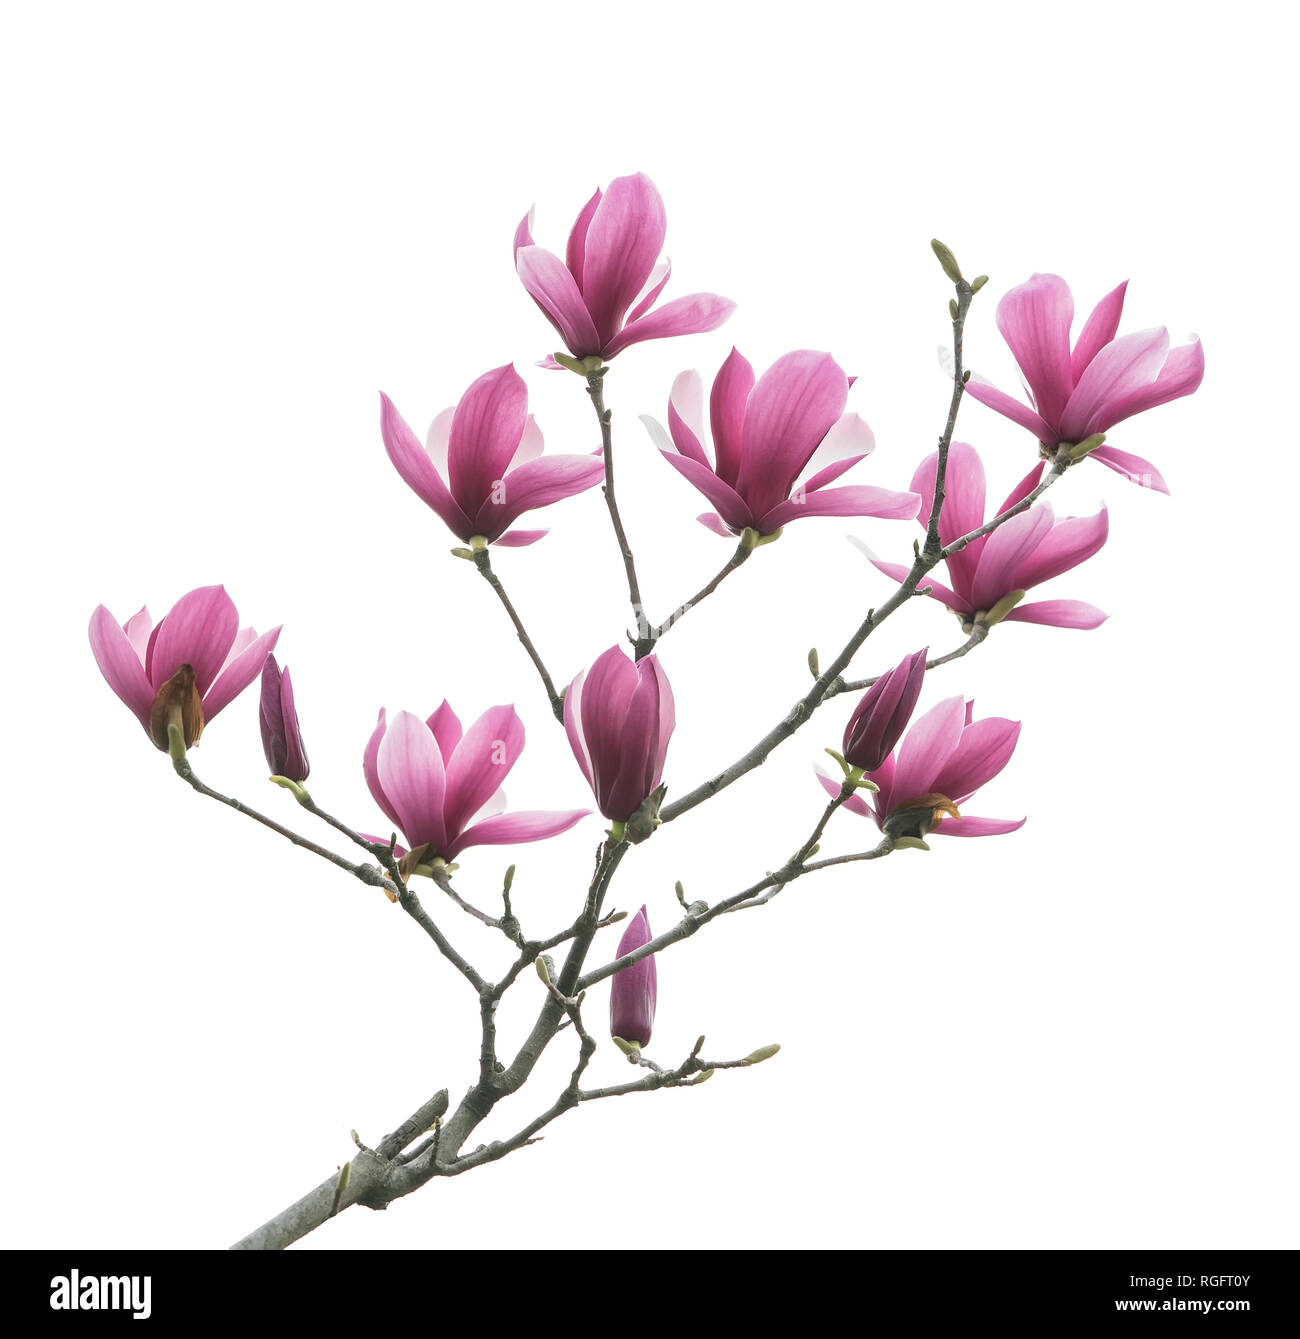 Magnolia Flower Branch Isolated On White Background Stock Photo